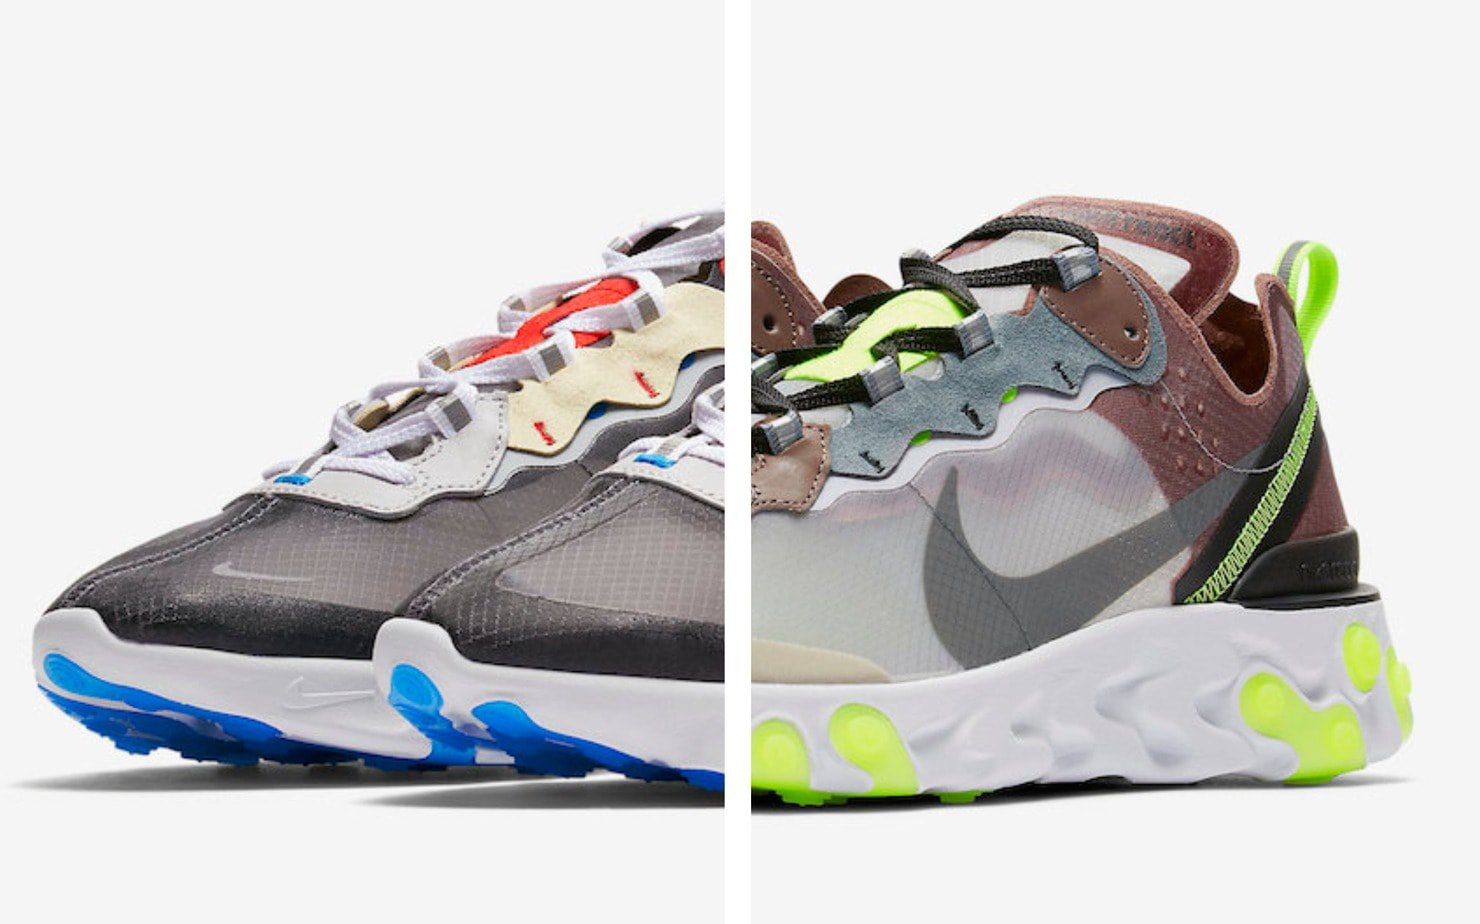 hot sale online c534b ad773 The Nike React Element 87 finally launched this month, after almost a year  of teasers online. The new silhouette has been incredibly well-received, ...